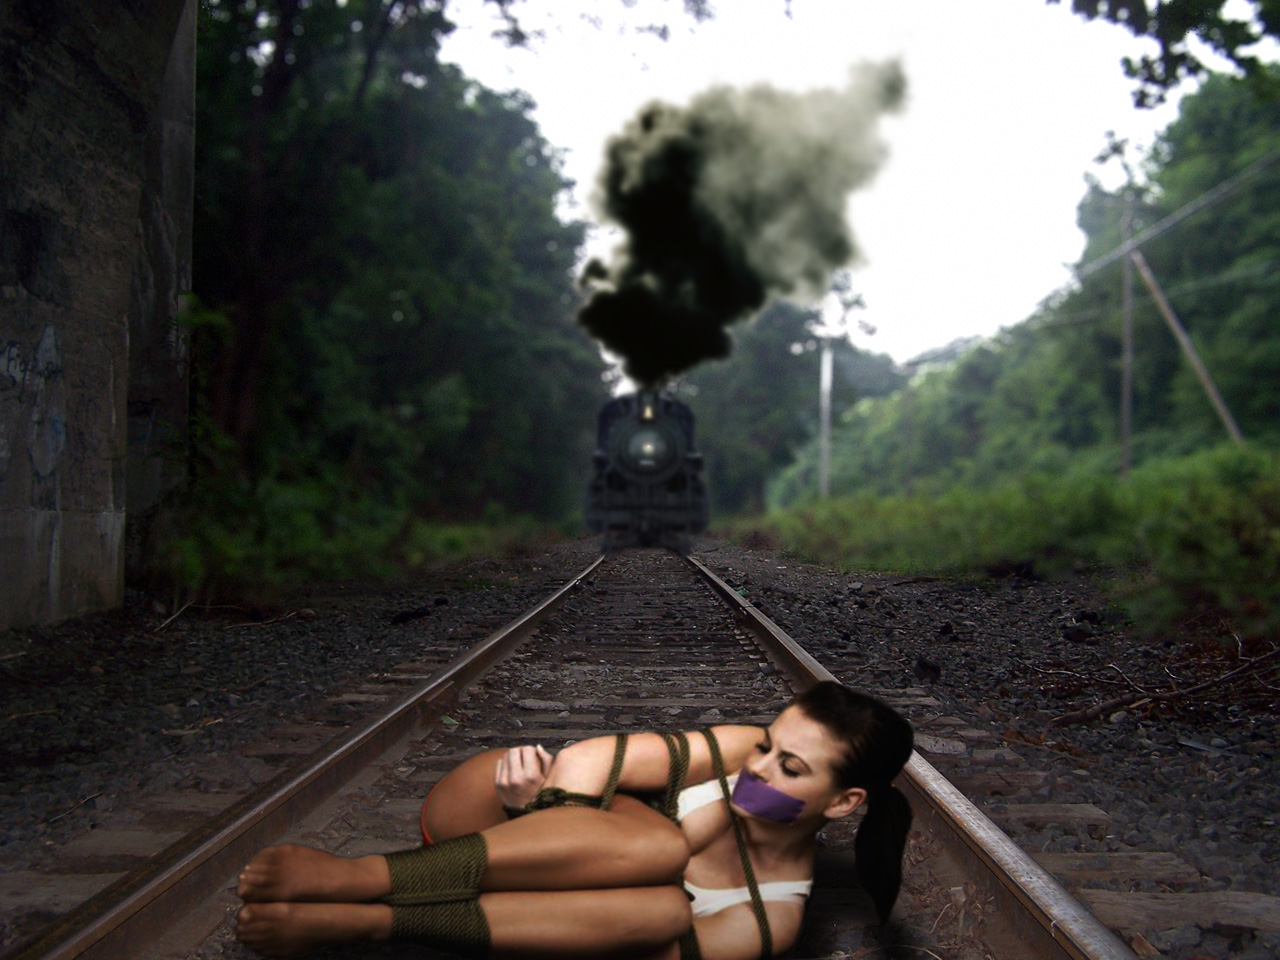 Thanks Girl tied to tracks